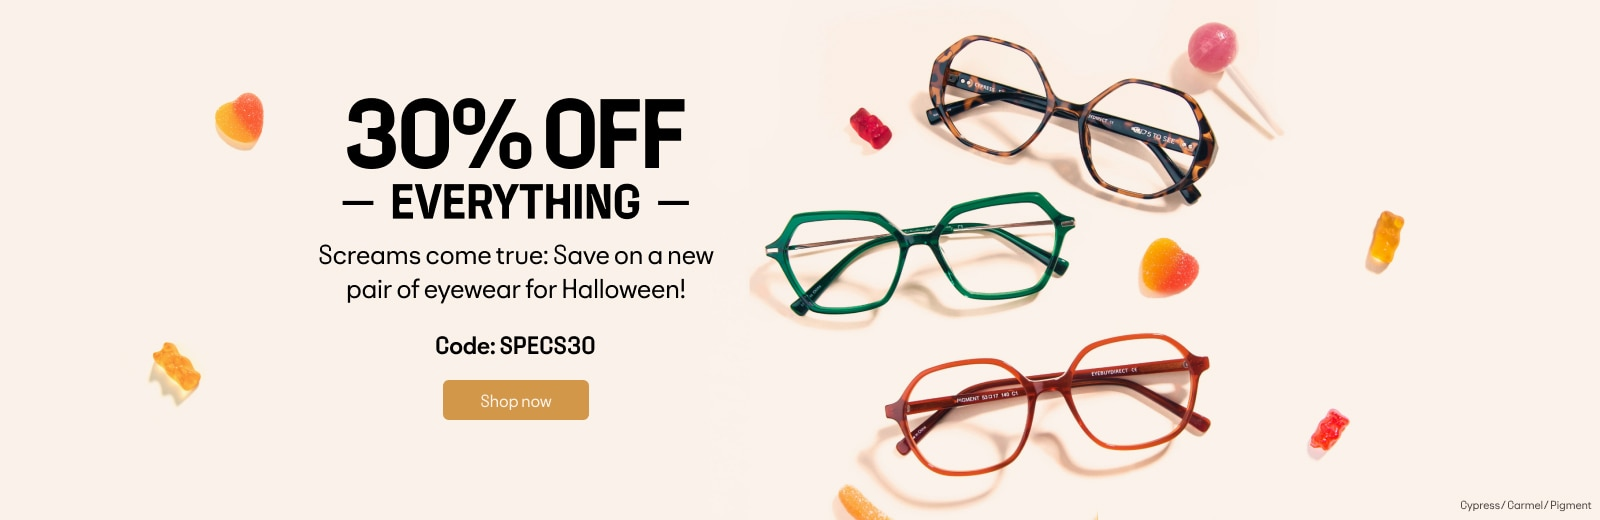 30% OFF EVERYTHING CODE: SPECS30